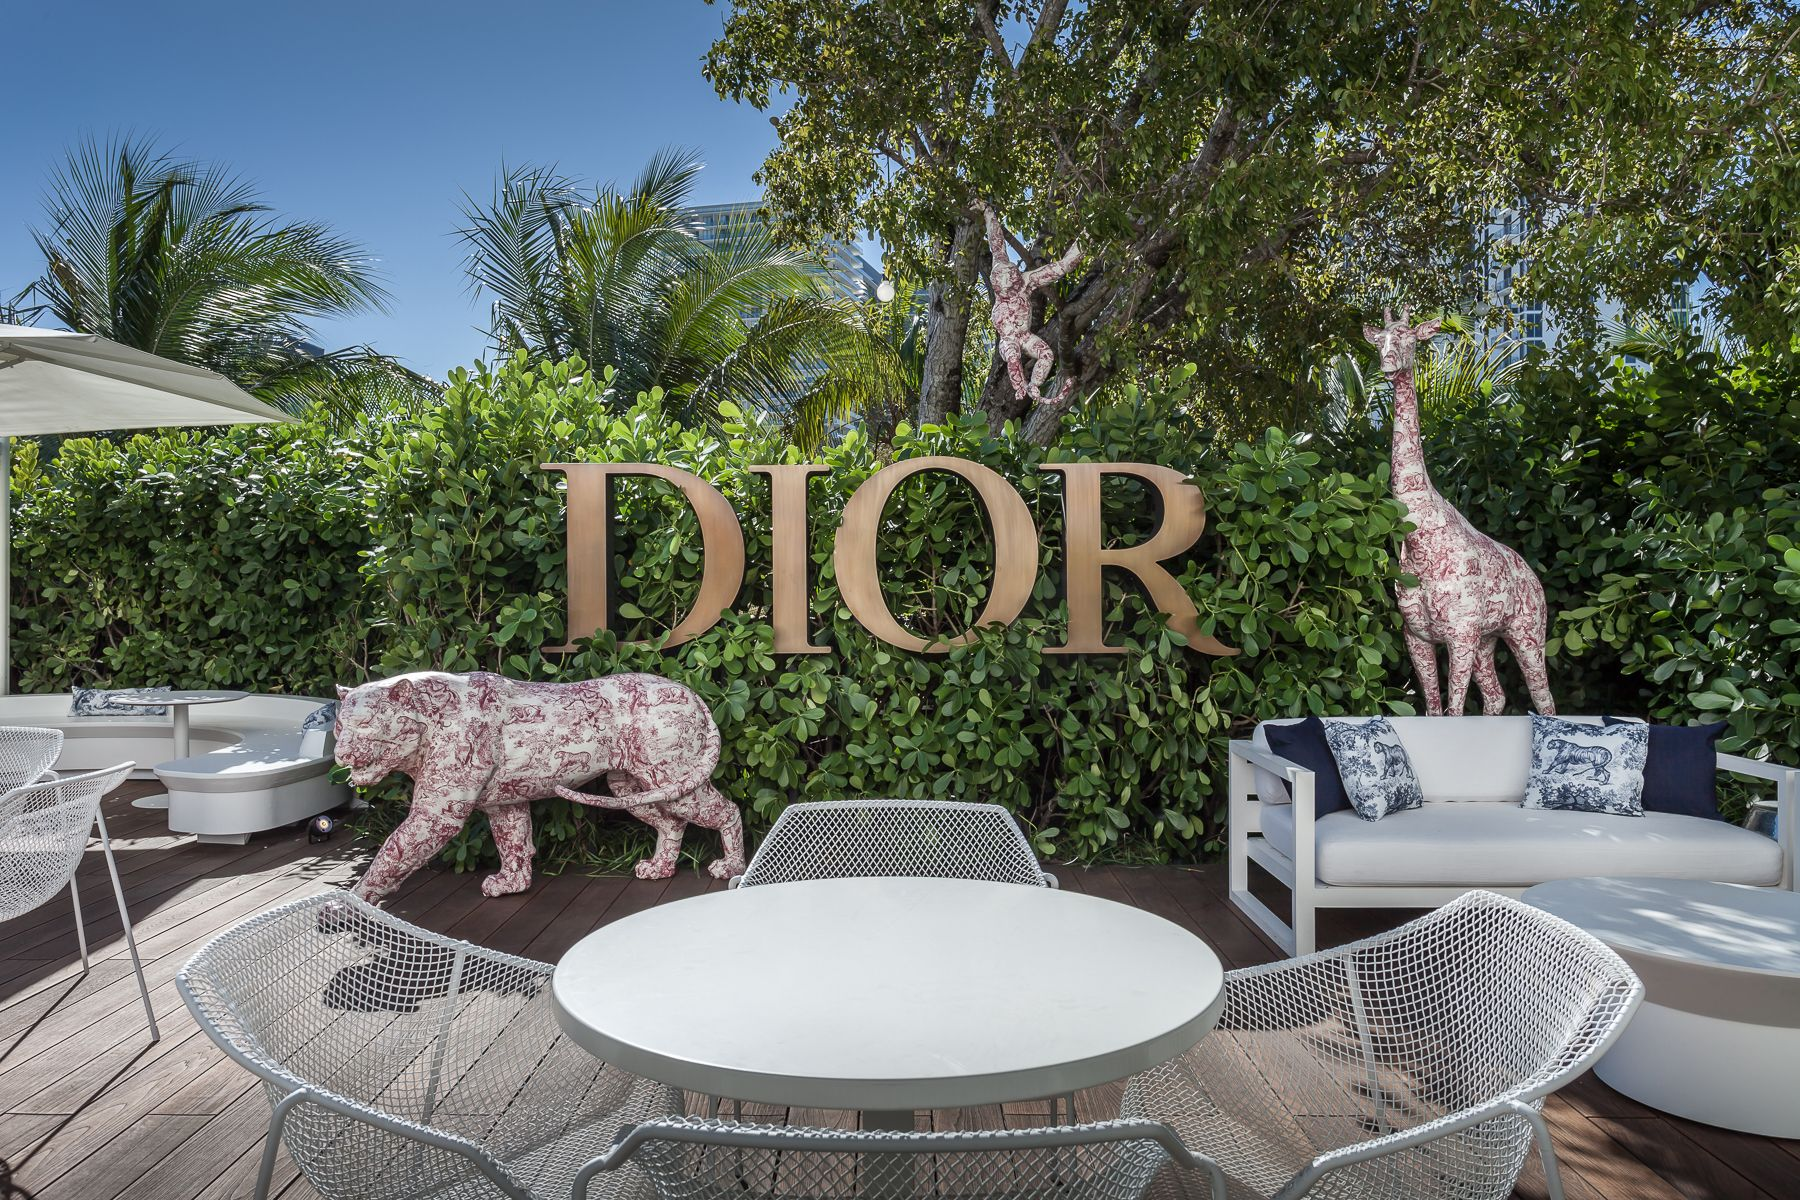 The Fashion Girl's Spot for Coffee Dior Cafe Located on the boutique's third floor terrace surrounded by luscious greenery and statues with the brand's iconic toile de Jouy print, this pop-up cafe is the chicest place to grab a cup of coffee. Their cappuccino comes with the Dior logo stamped on the foam, making this place an Instagram-worthy stop.